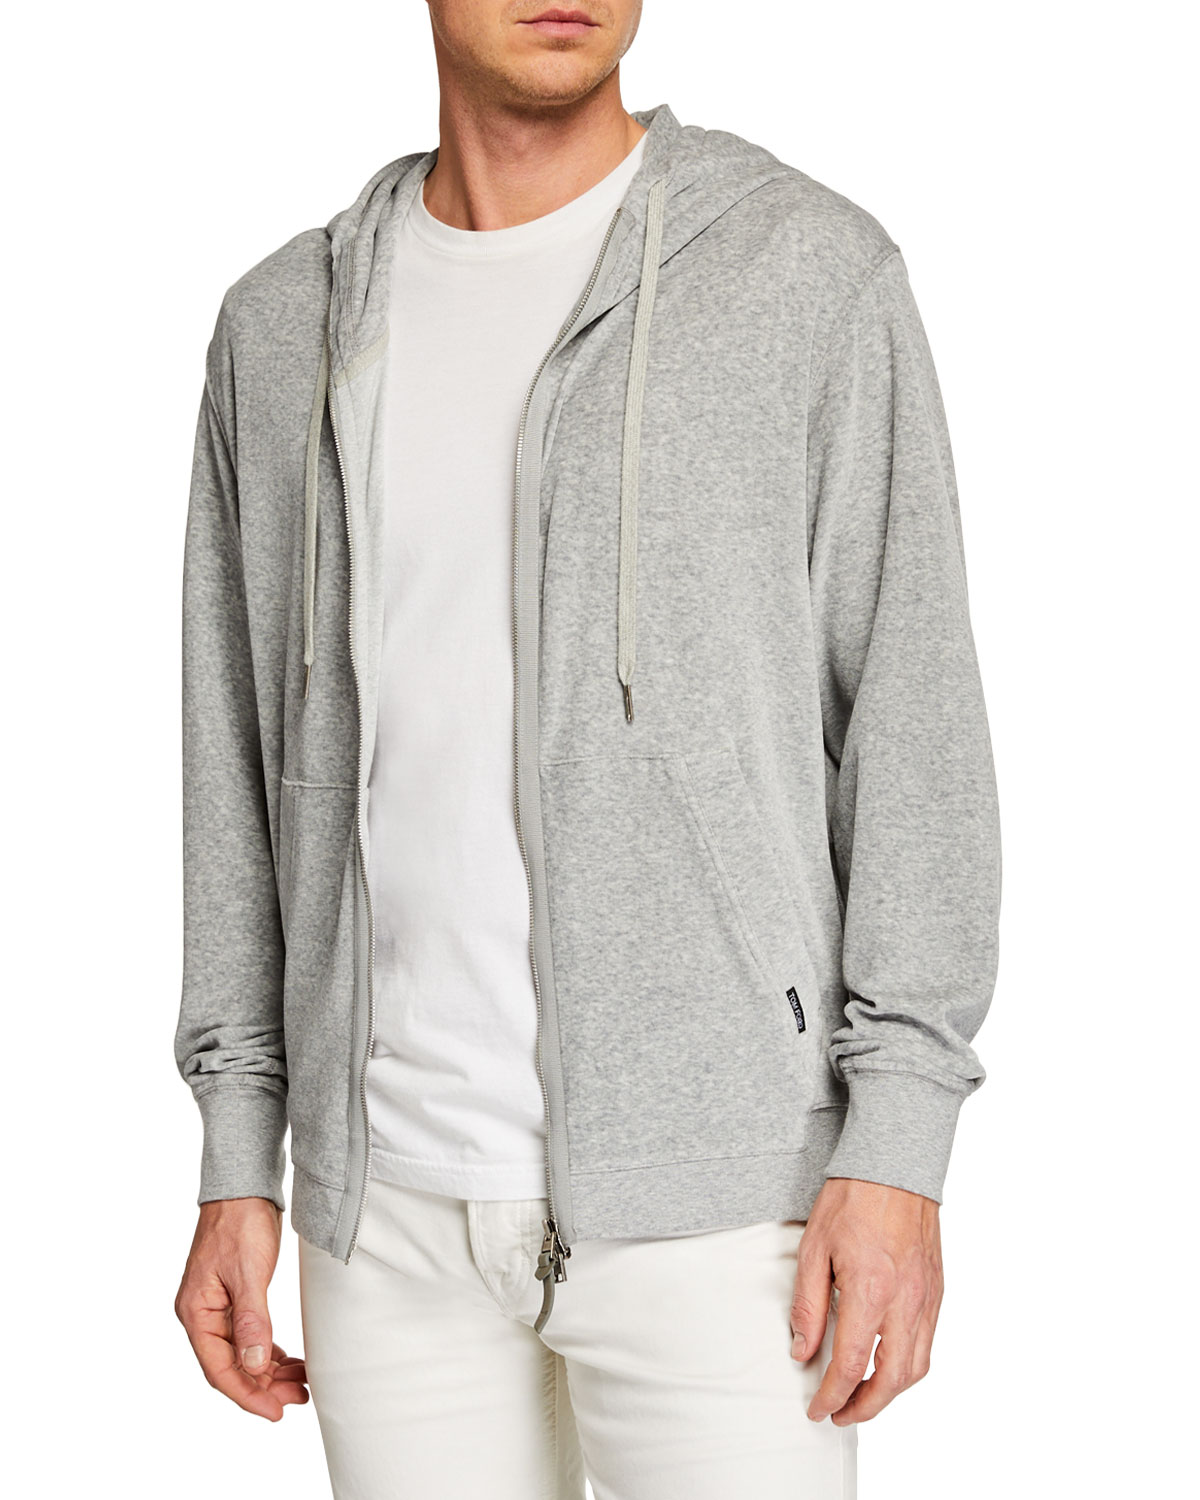 934f2fd0e8c76 TOM FORD Men's Heathered Velour Zip-Front Hoodie | Neiman Marcus